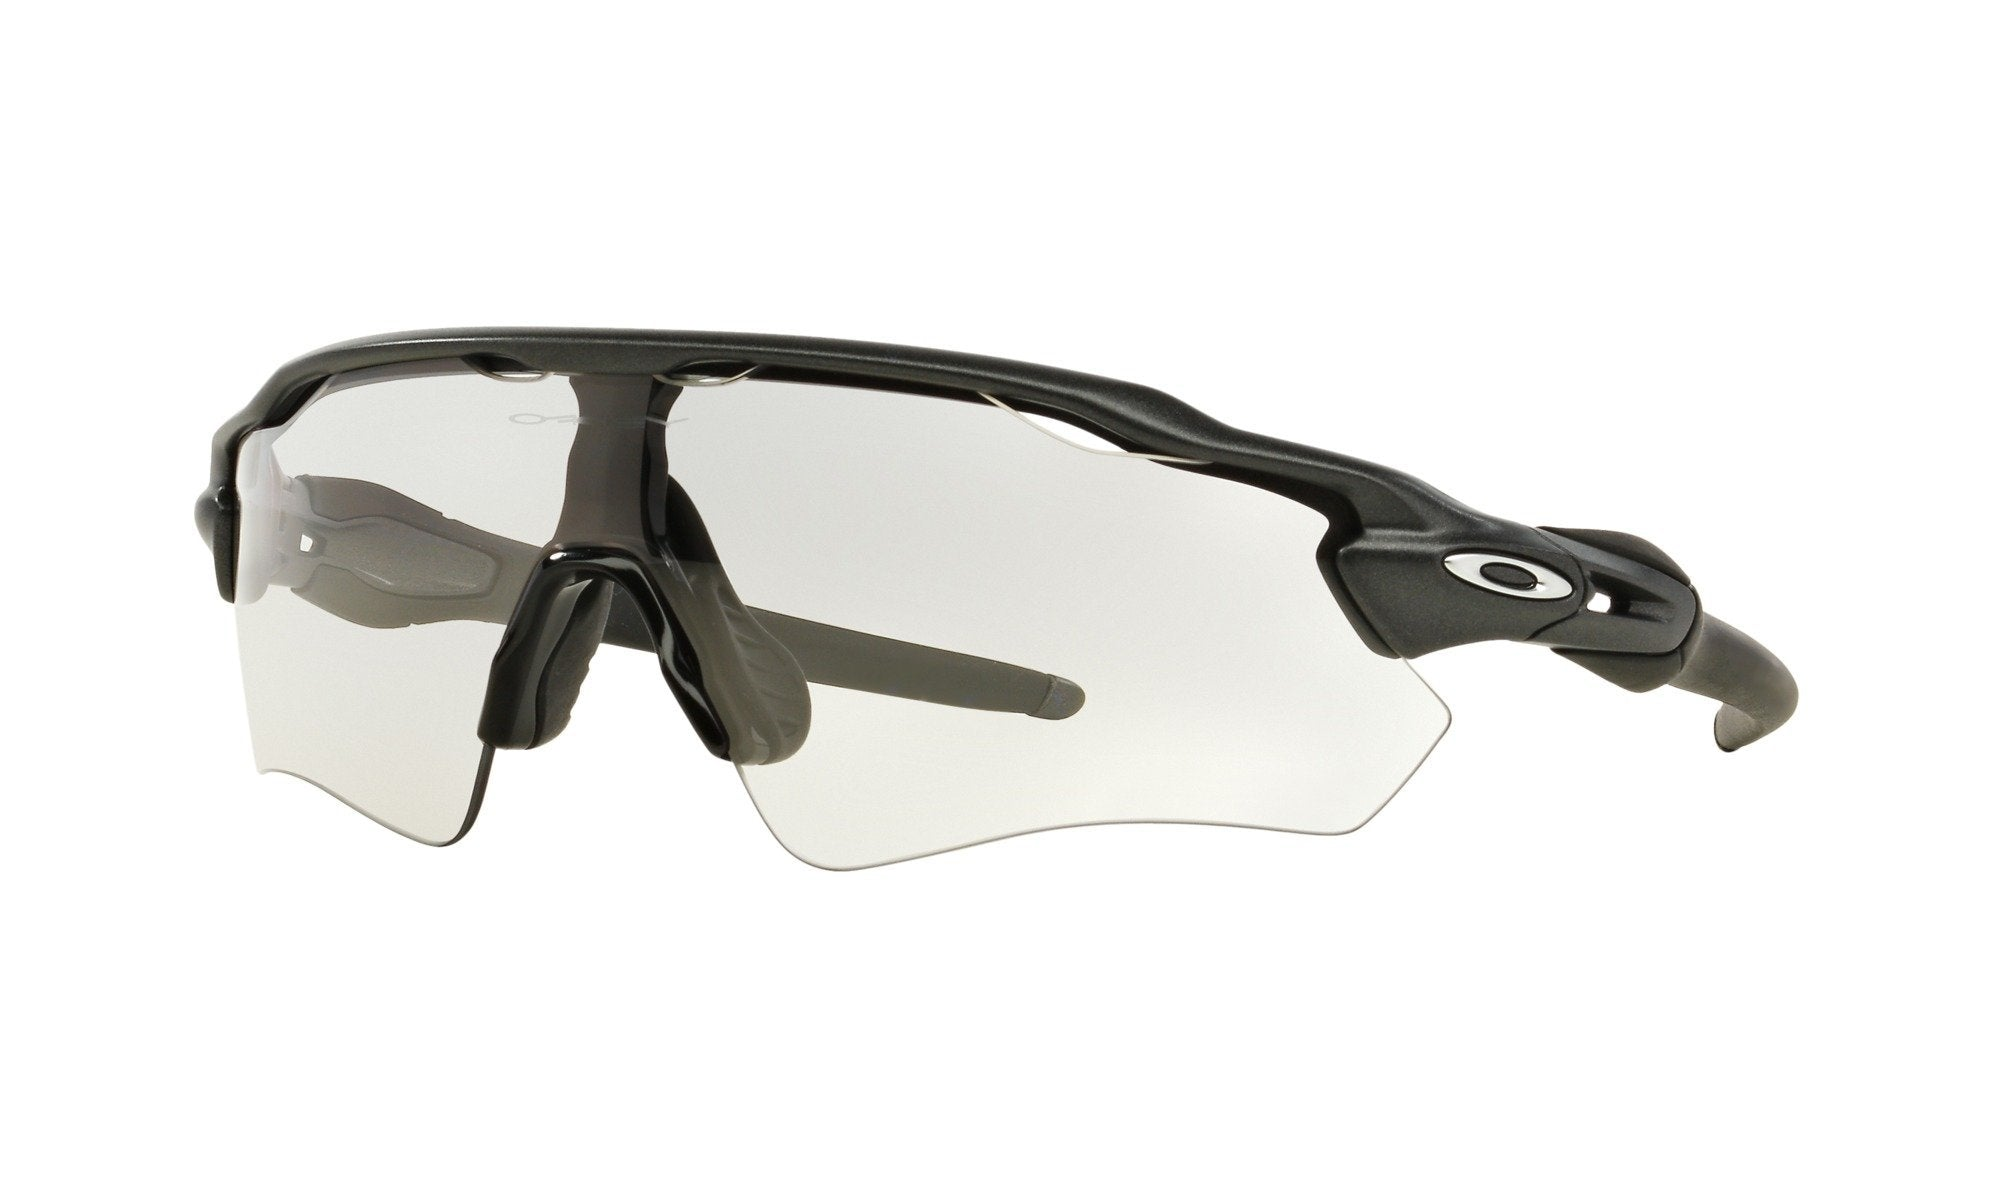 e356d47b96 Oakley Radar EV Path Steel w Clear Photochromic Lens - Cycles Galleria